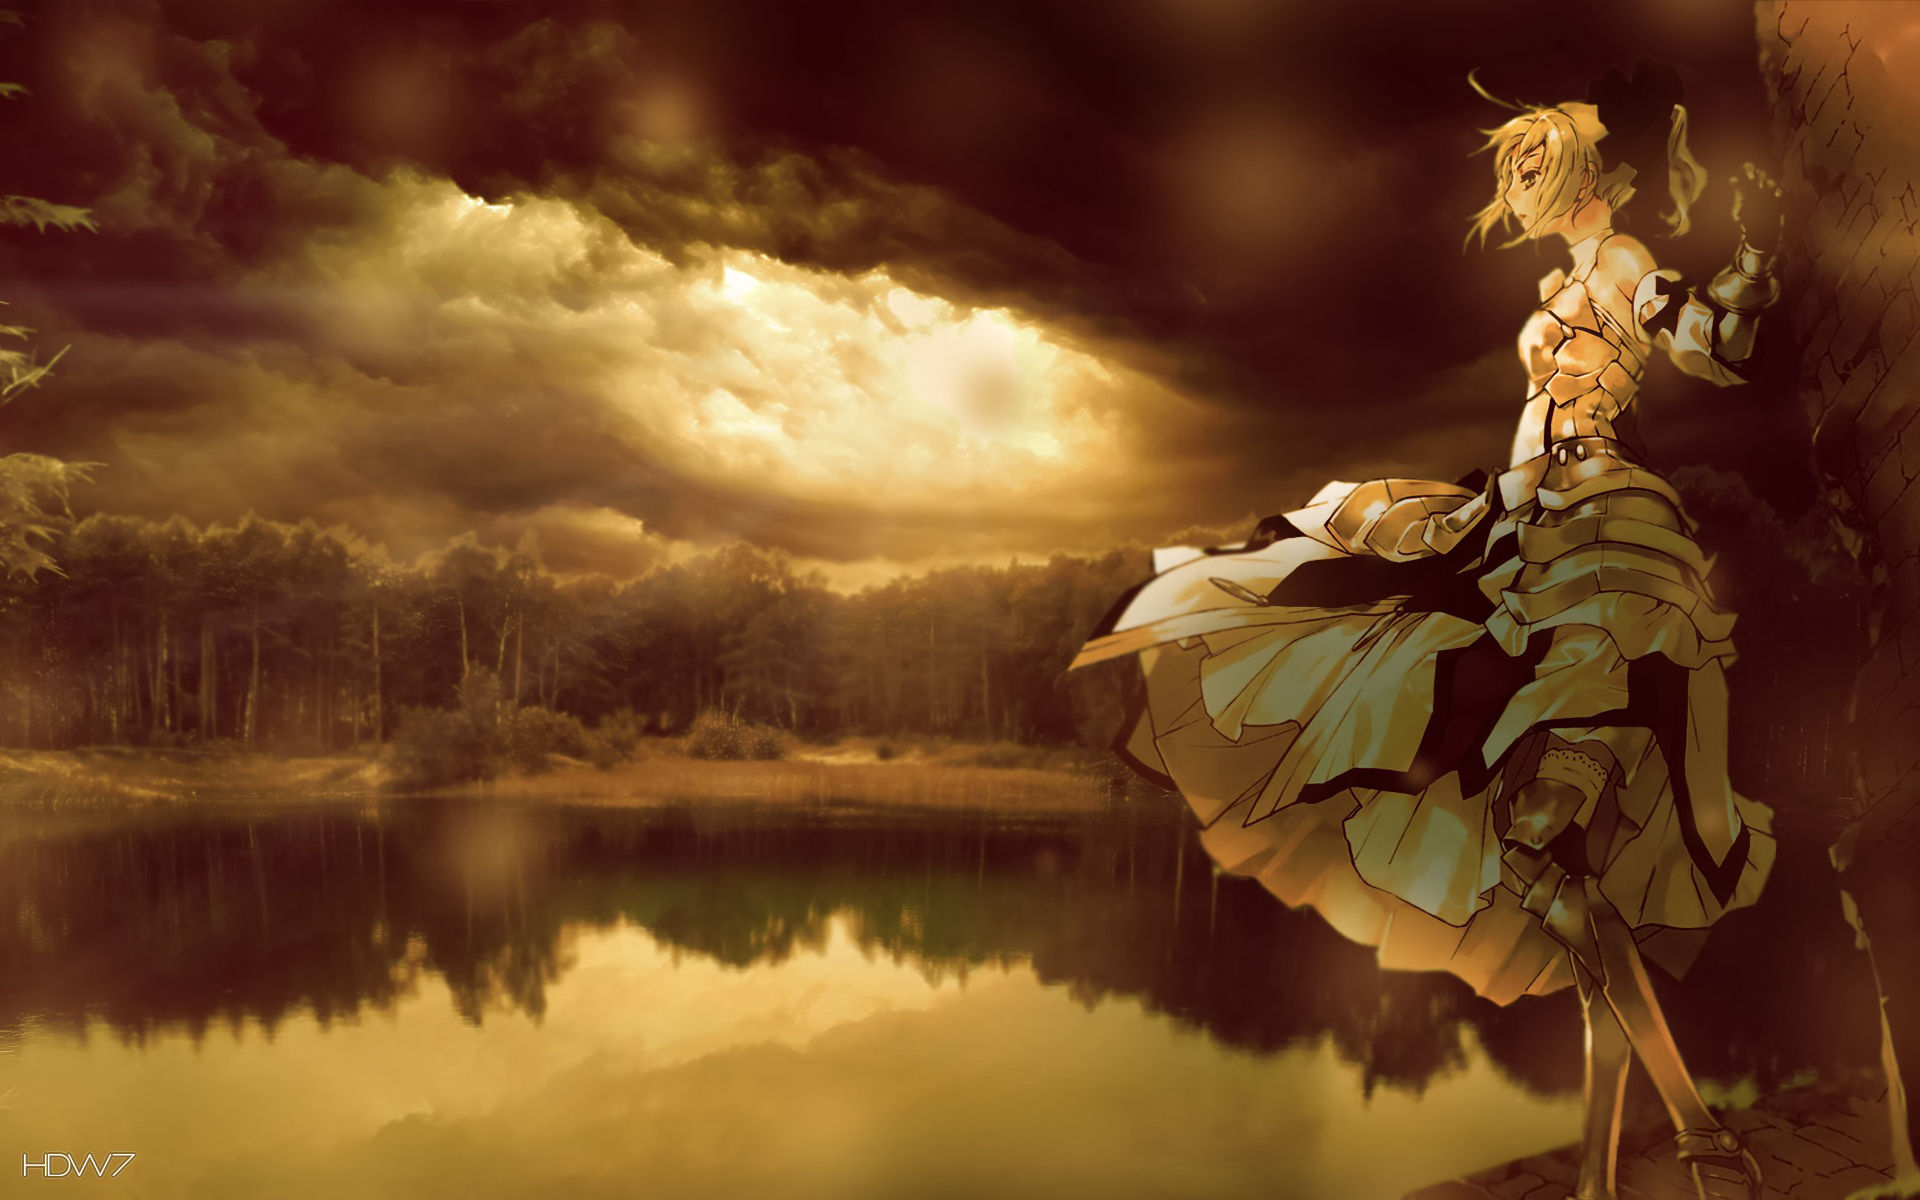 anime girl at the shore of a lake under the clouds wallpaper